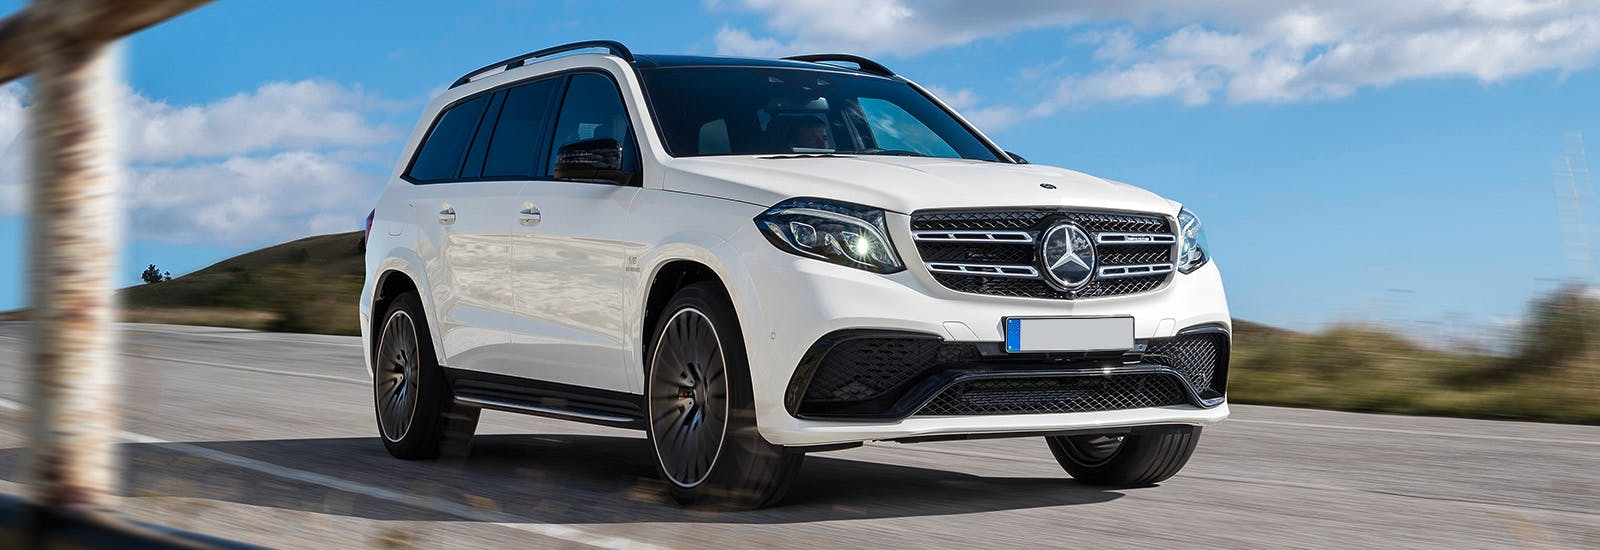 The best seven seater suvs on sale carwow for Mercedes benz 7 passenger